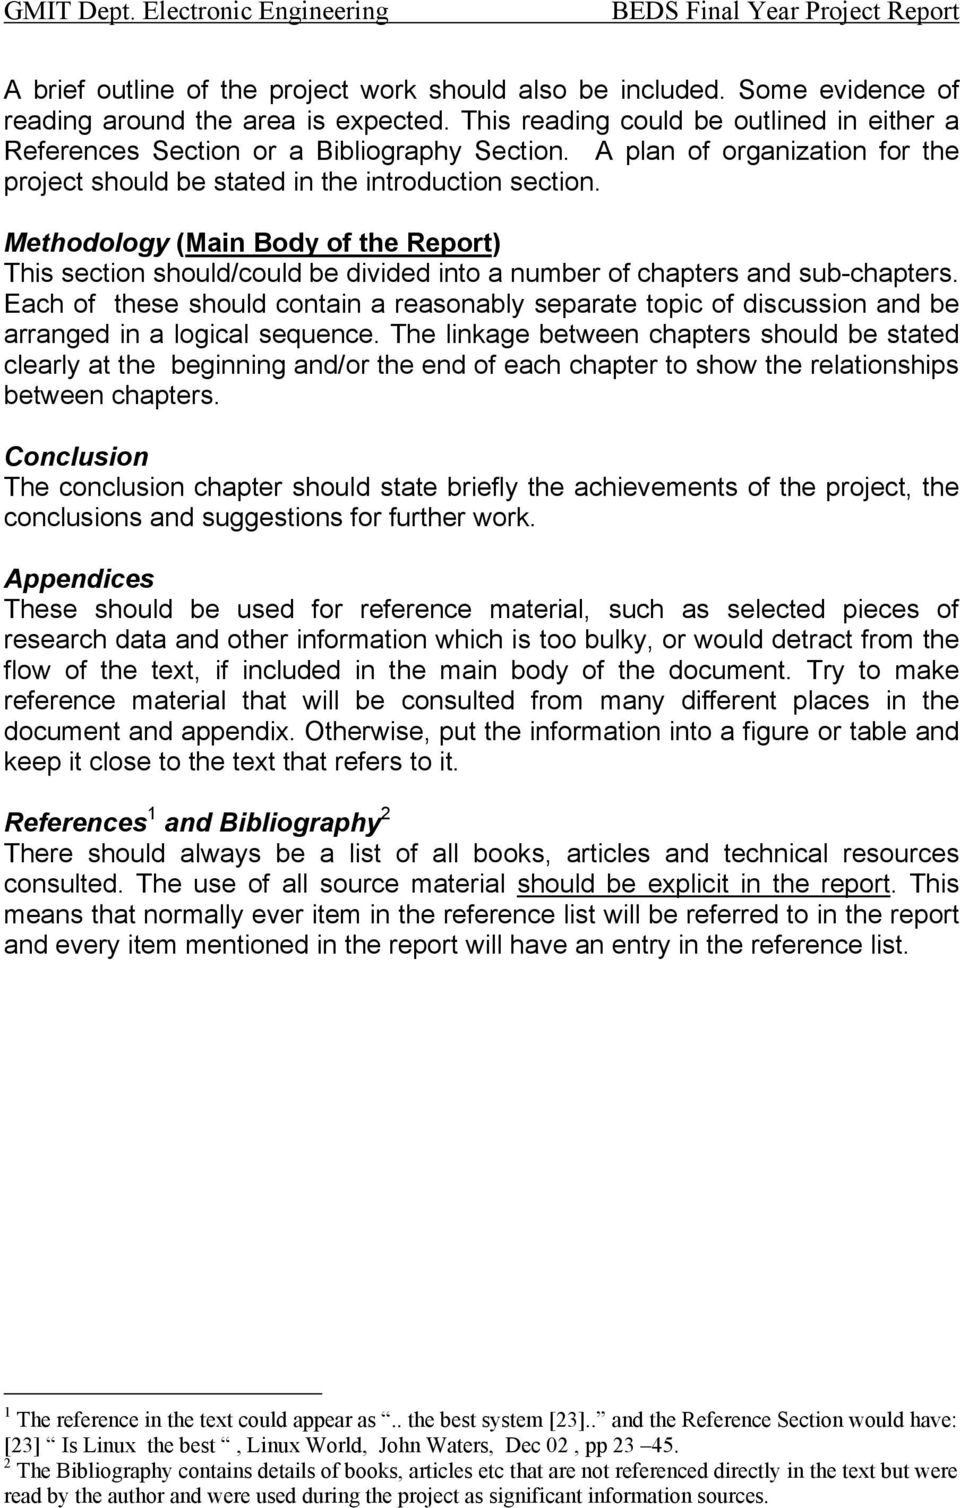 Methodology (Main Body of the Report) This section should/could be divided into a number of chapters and sub-chapters.